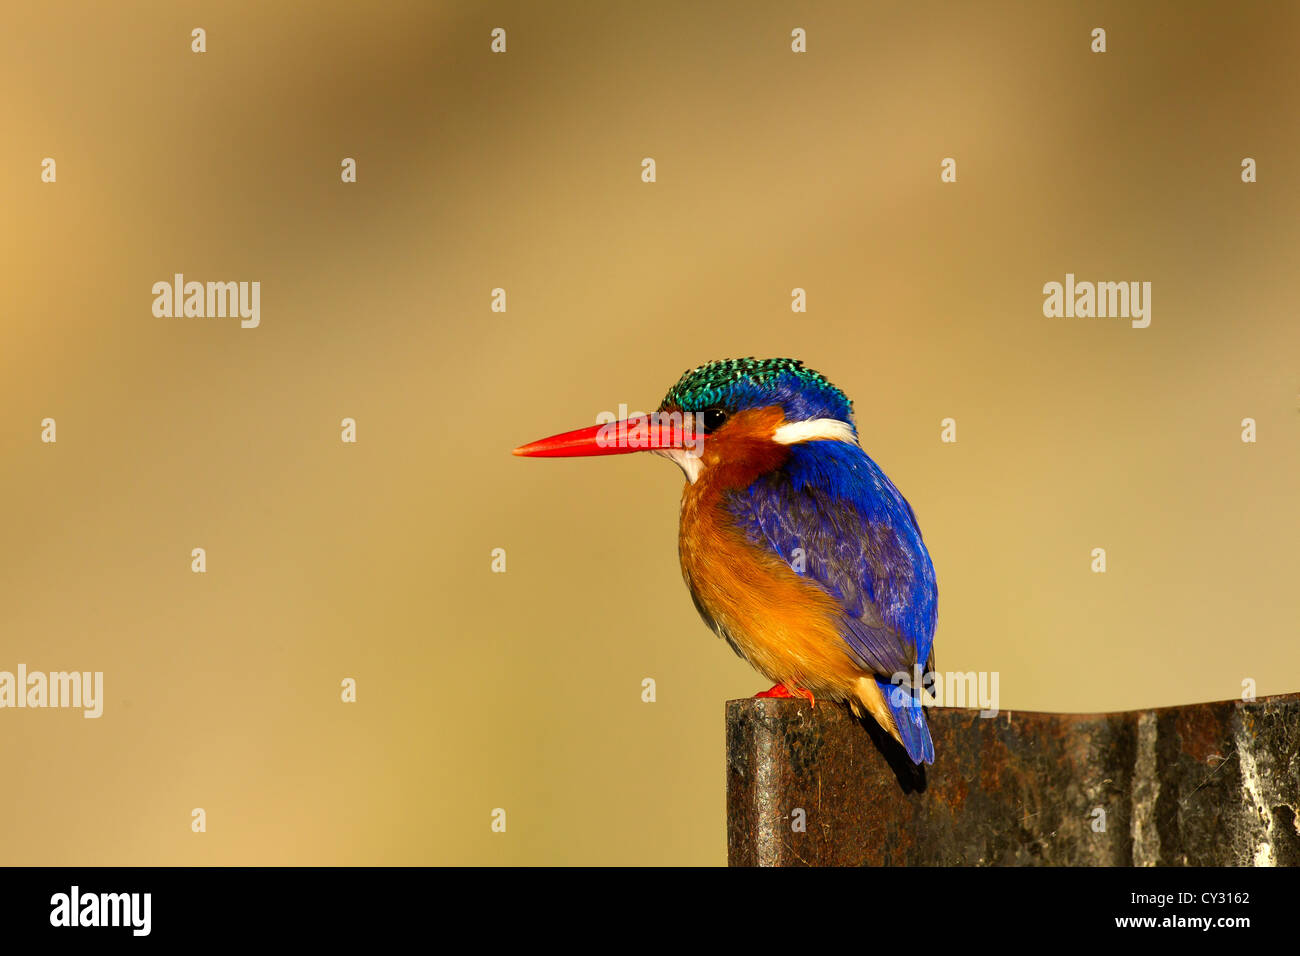 Kingfisher perched waiting for a meal - Stock Image